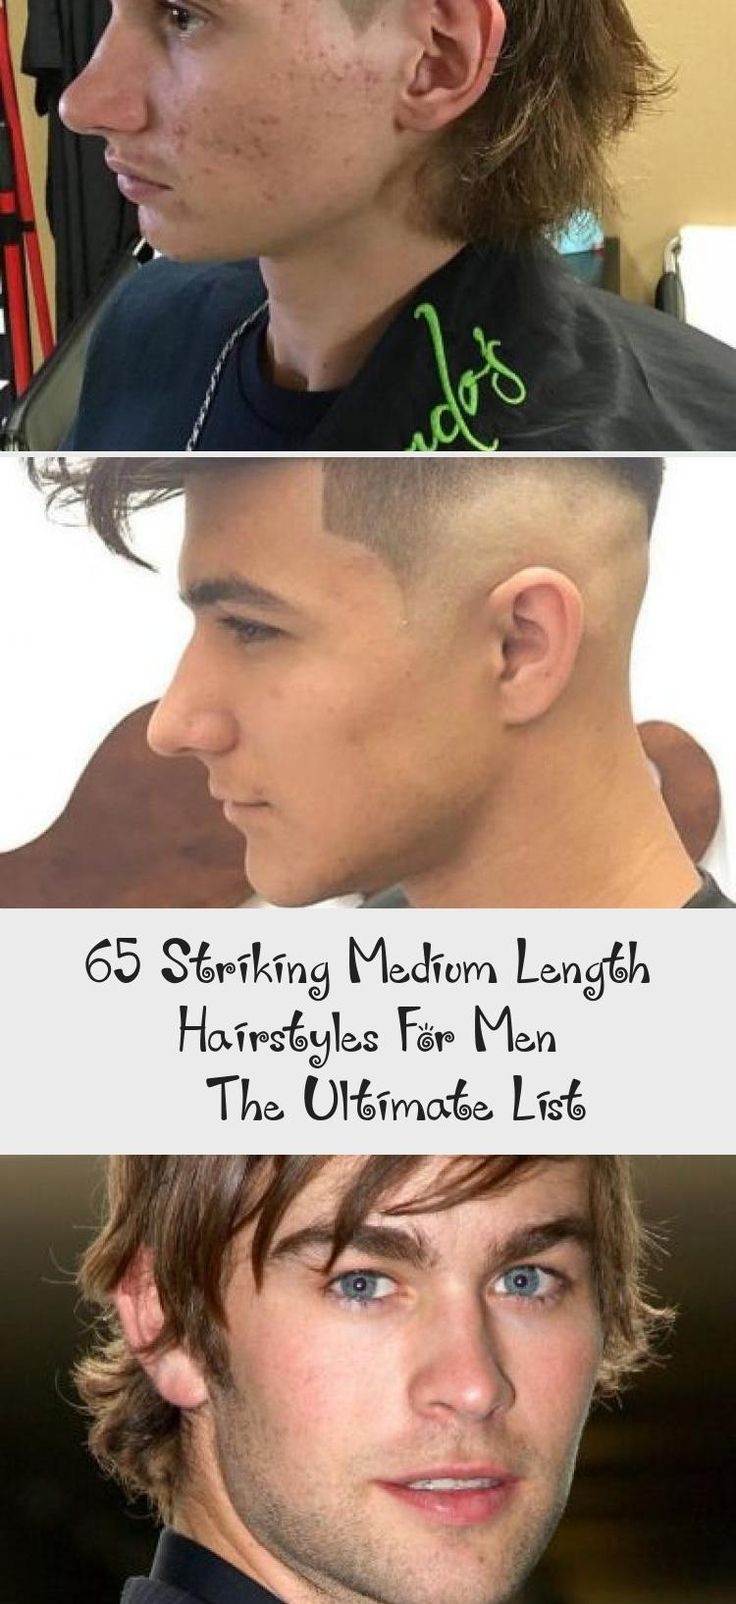 65 Striking Medium Length Hairstyles For Men – The Ultimate List